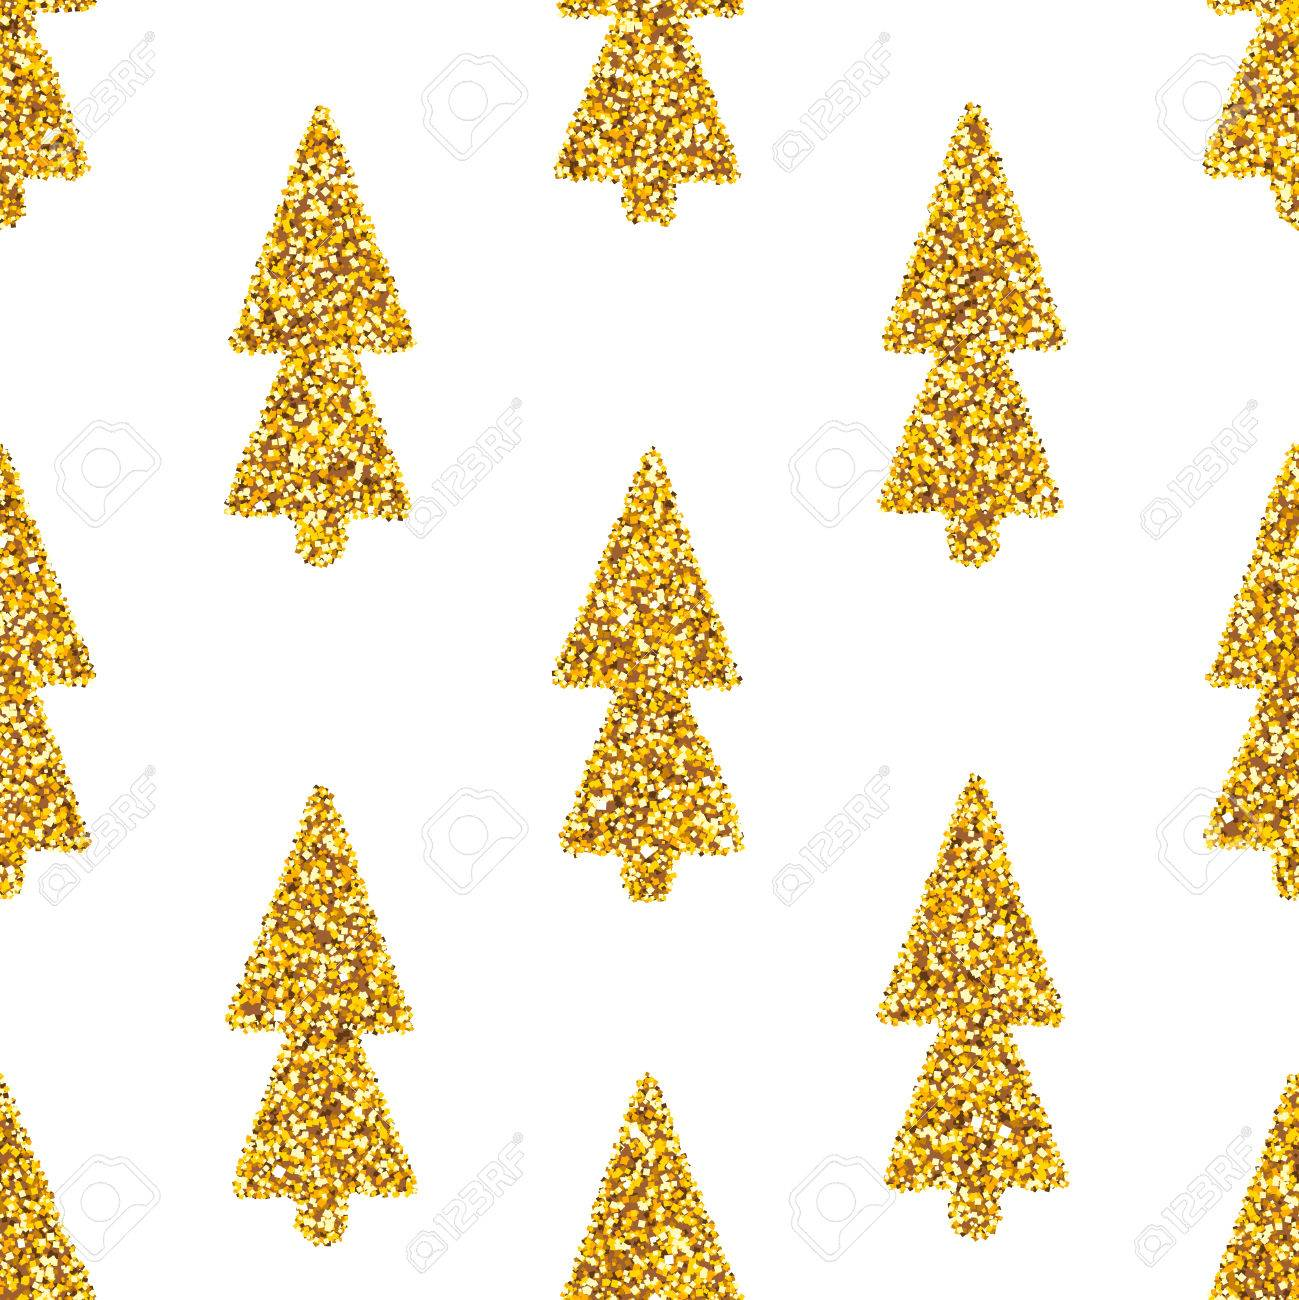 White Seamless Pattern With Glam Golden Glitter Christmas Trees Royalty Free Cliparts Vectors And Stock Illustration Image 51028814